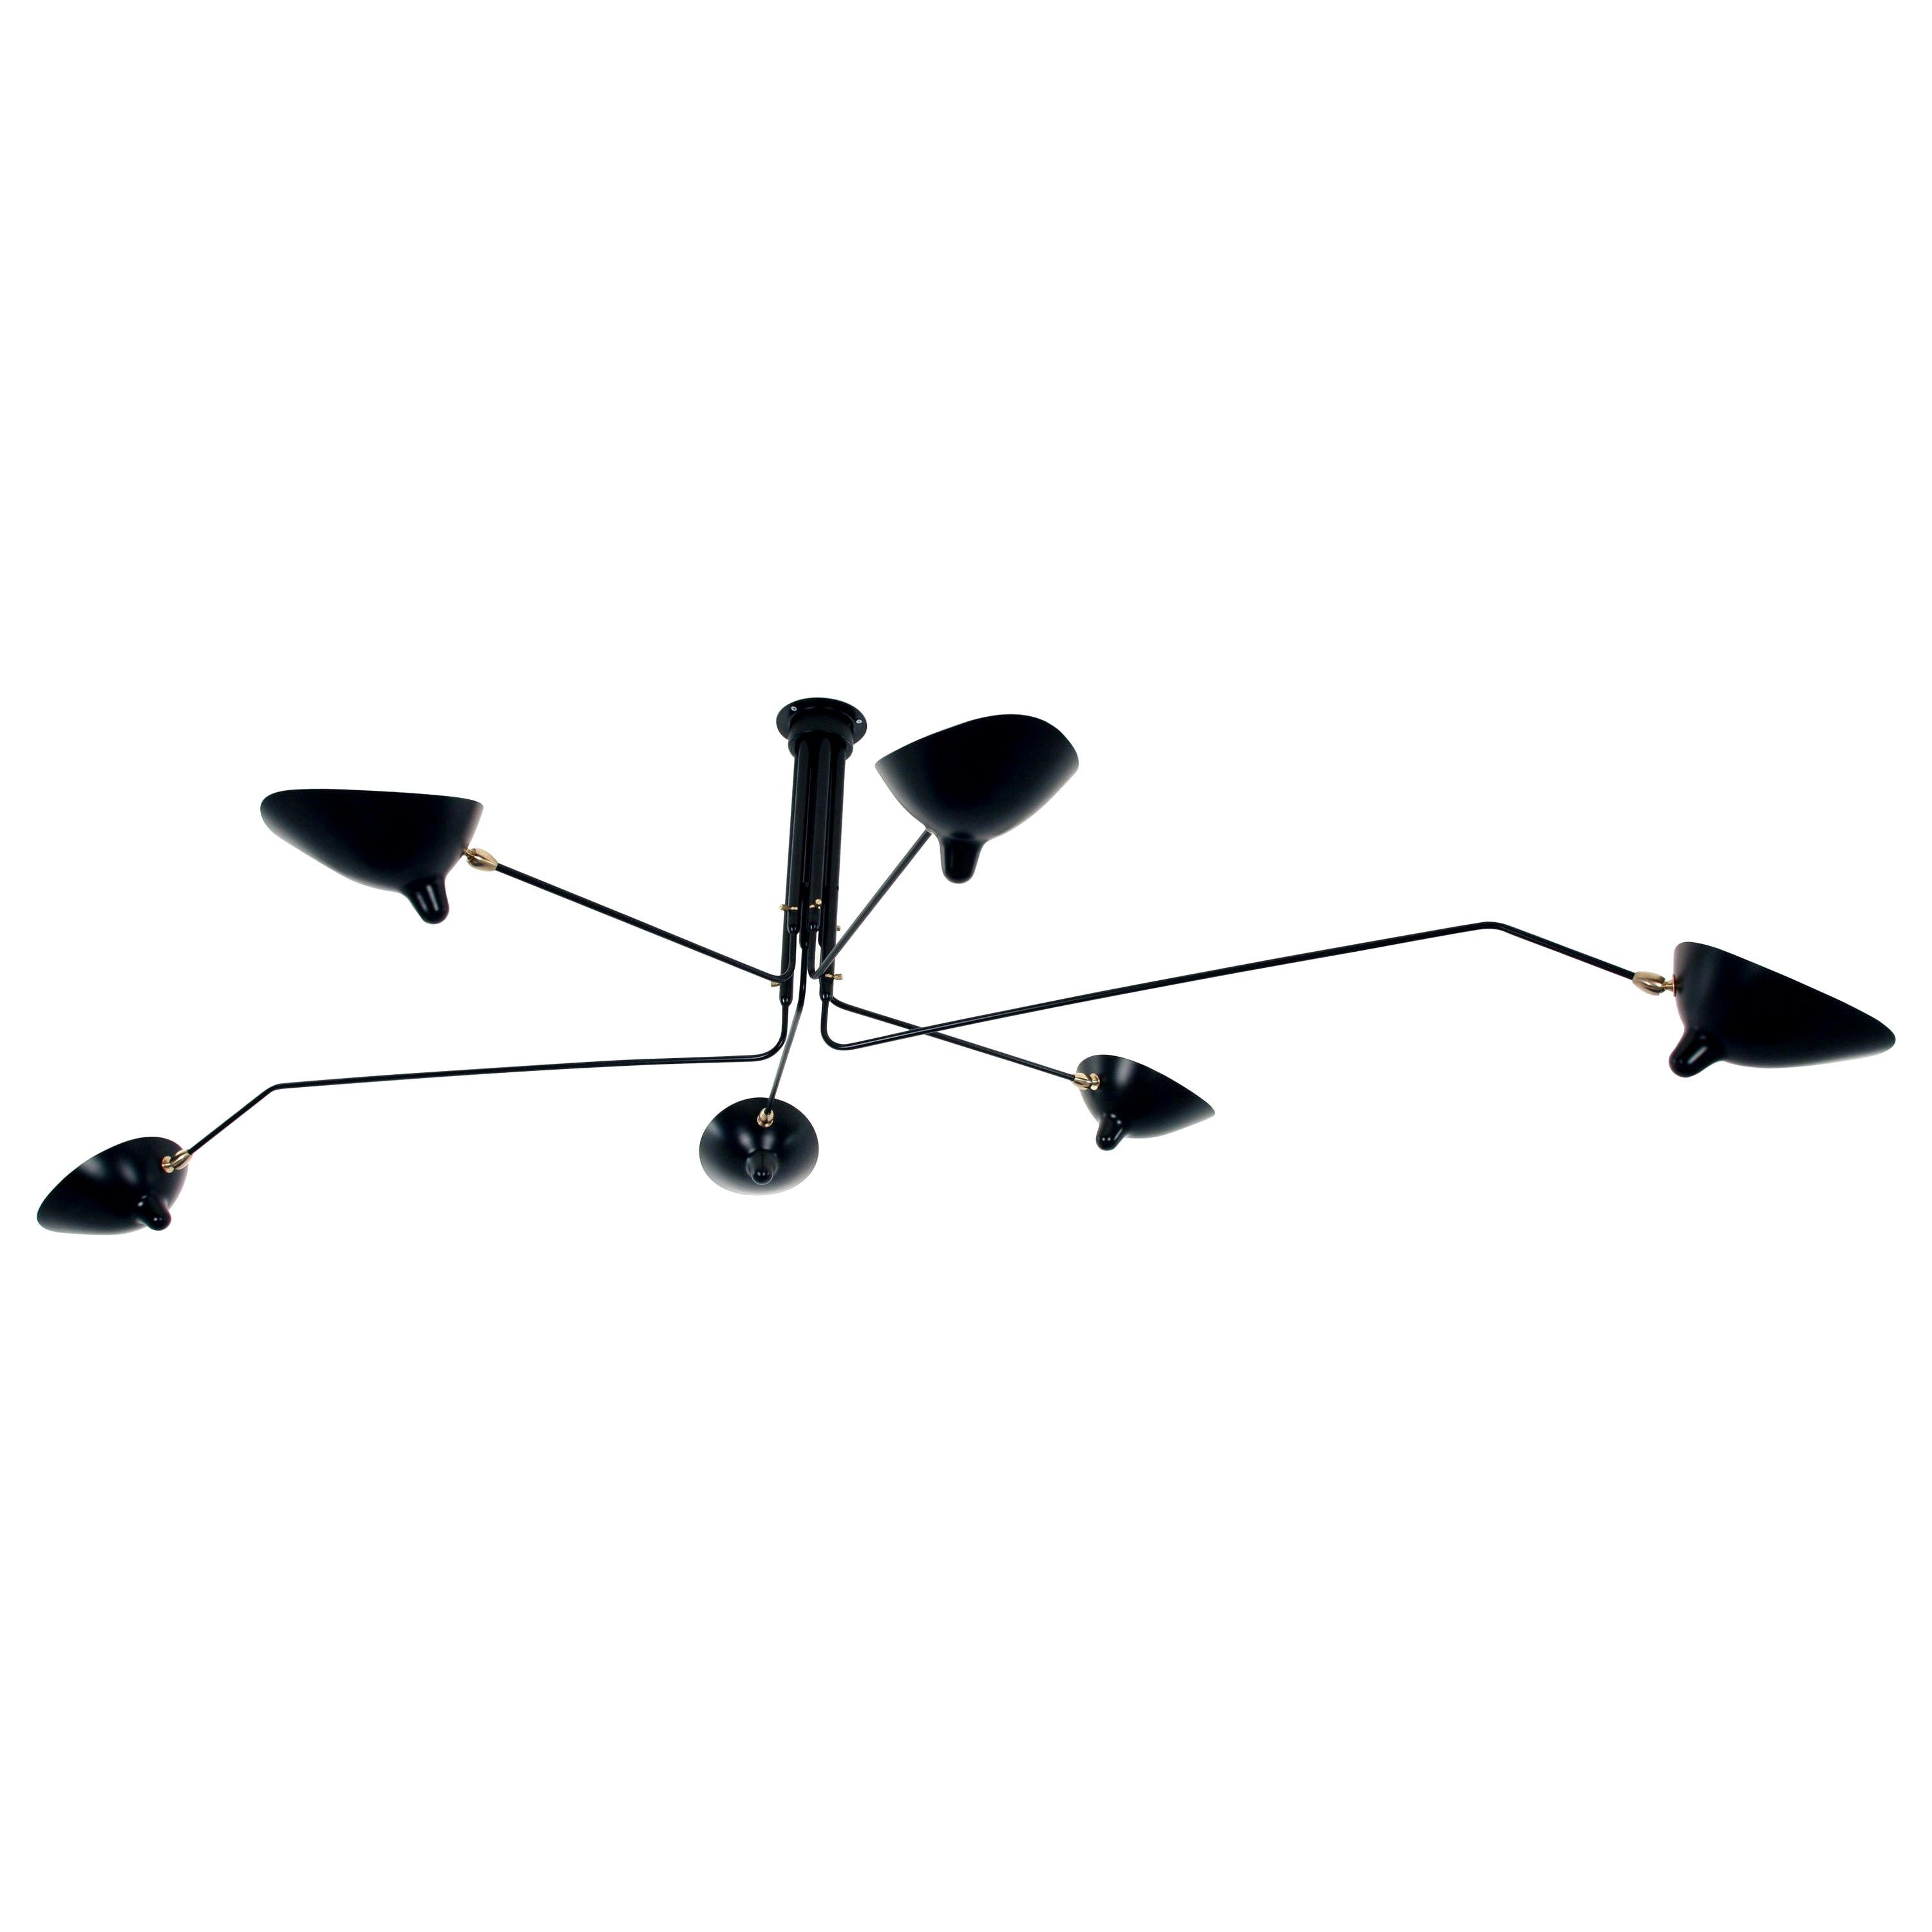 Serge Mouille Ceiling Lamp 6 Rotating Arms in Black or White